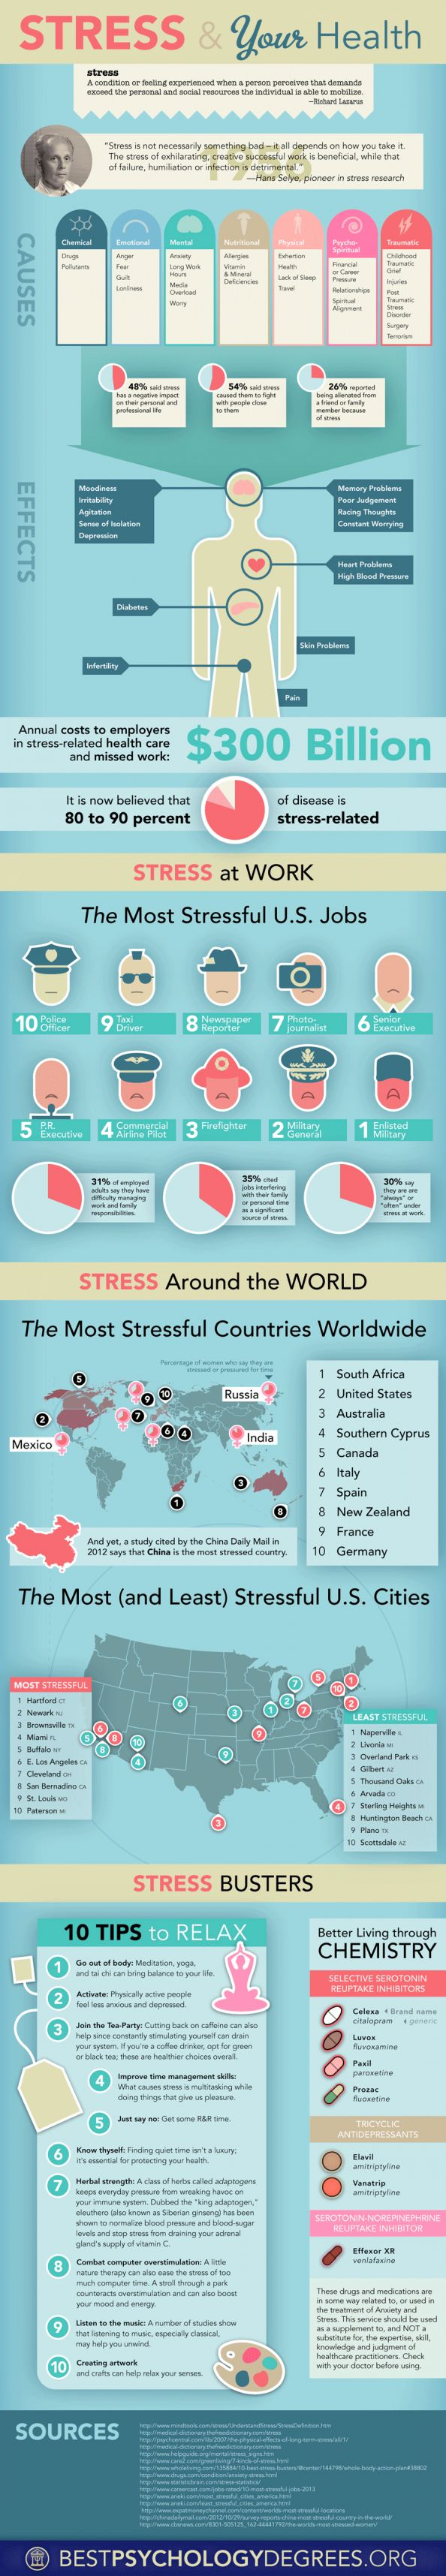 Stress & Your Health Infographic